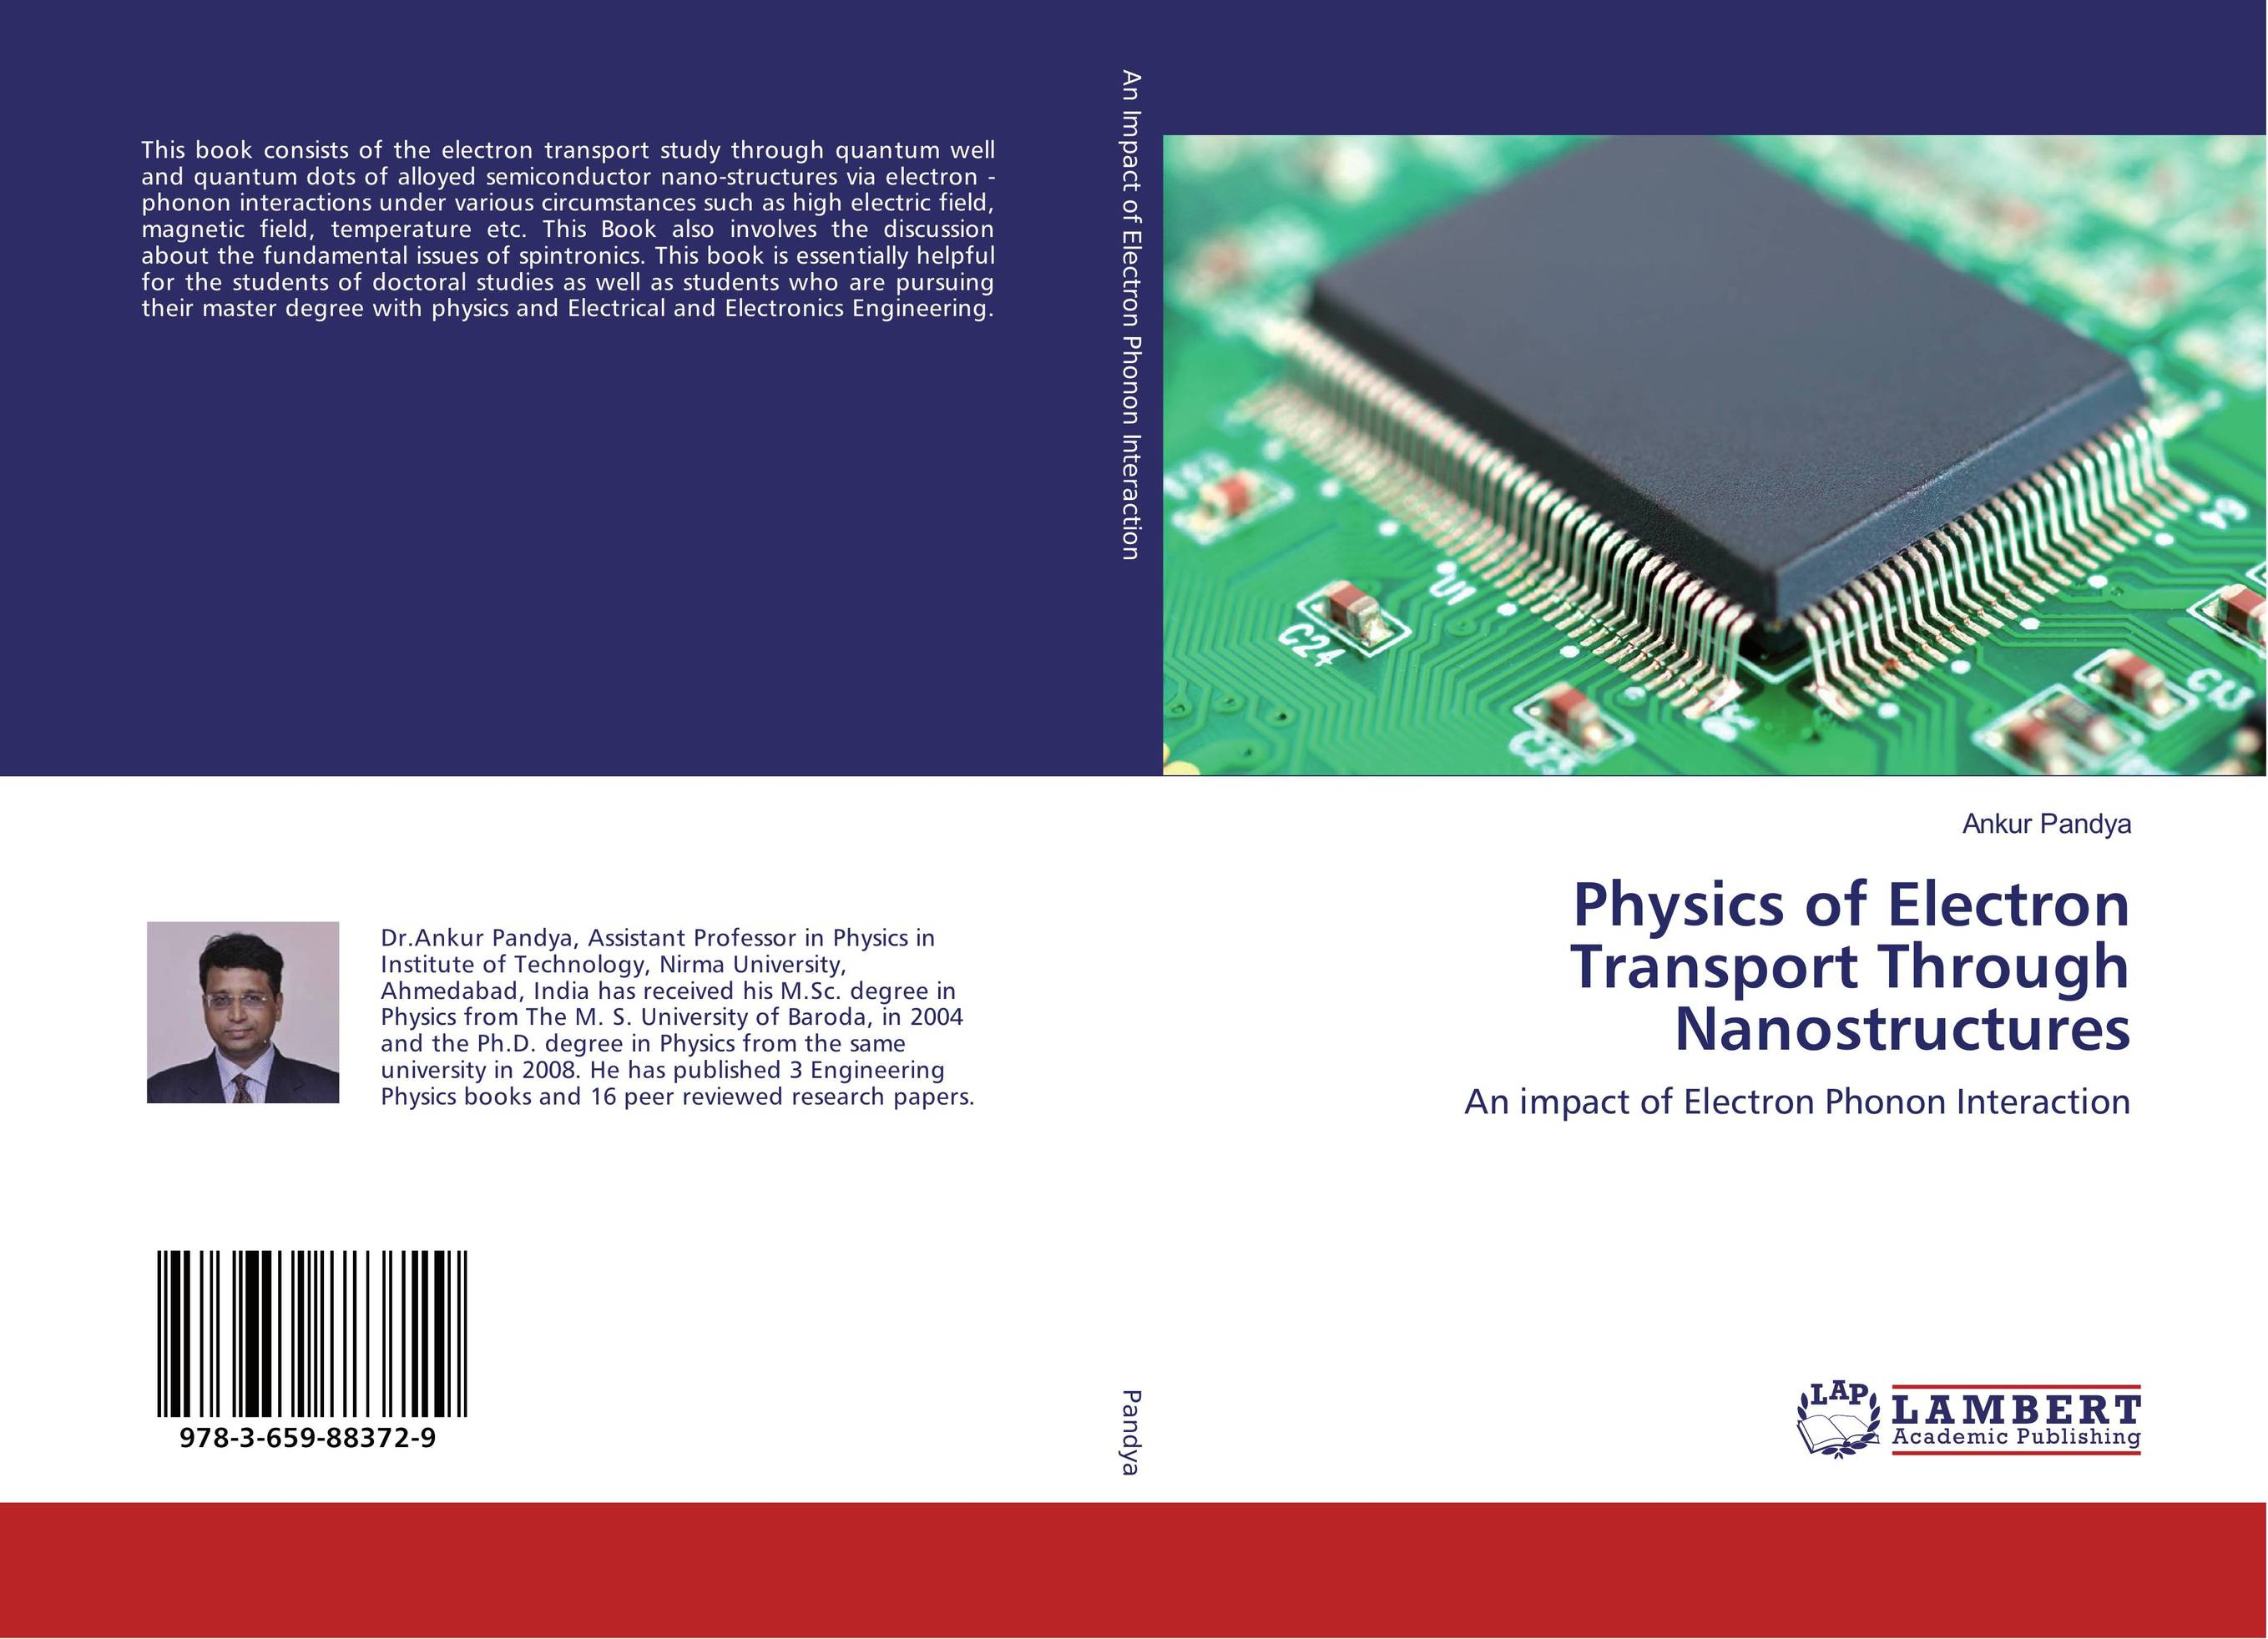 Physics of Electron Transport Through Nanostructures fundamentals of physics extended 9th edition international student version with wileyplus set